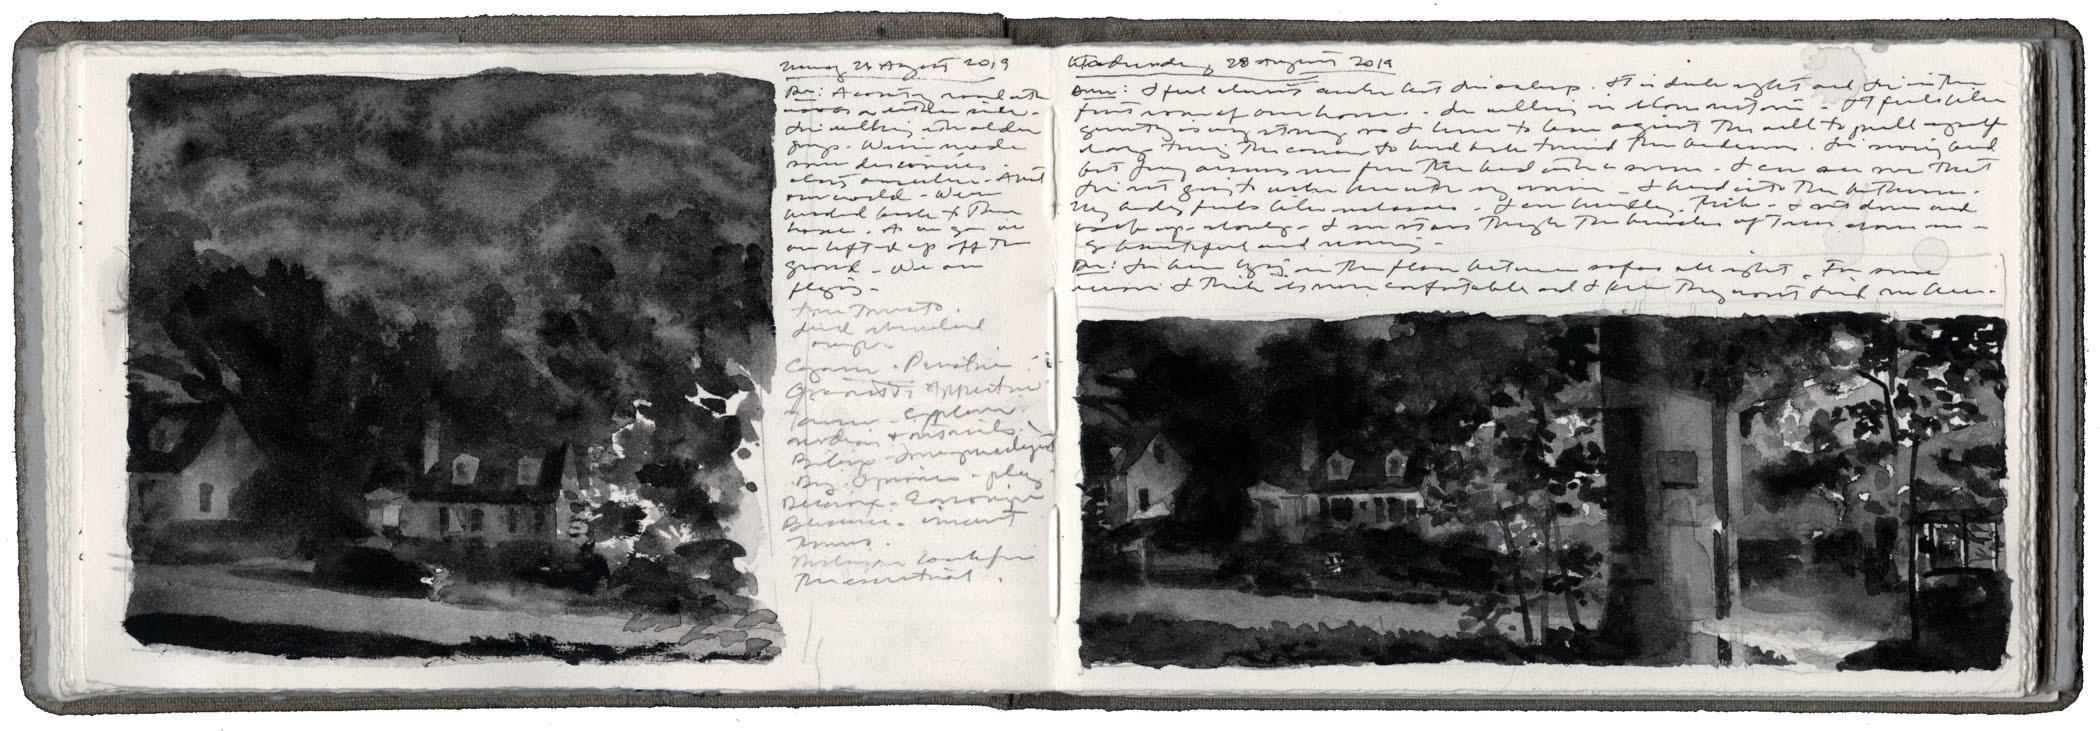 Studies of the Street in Black image